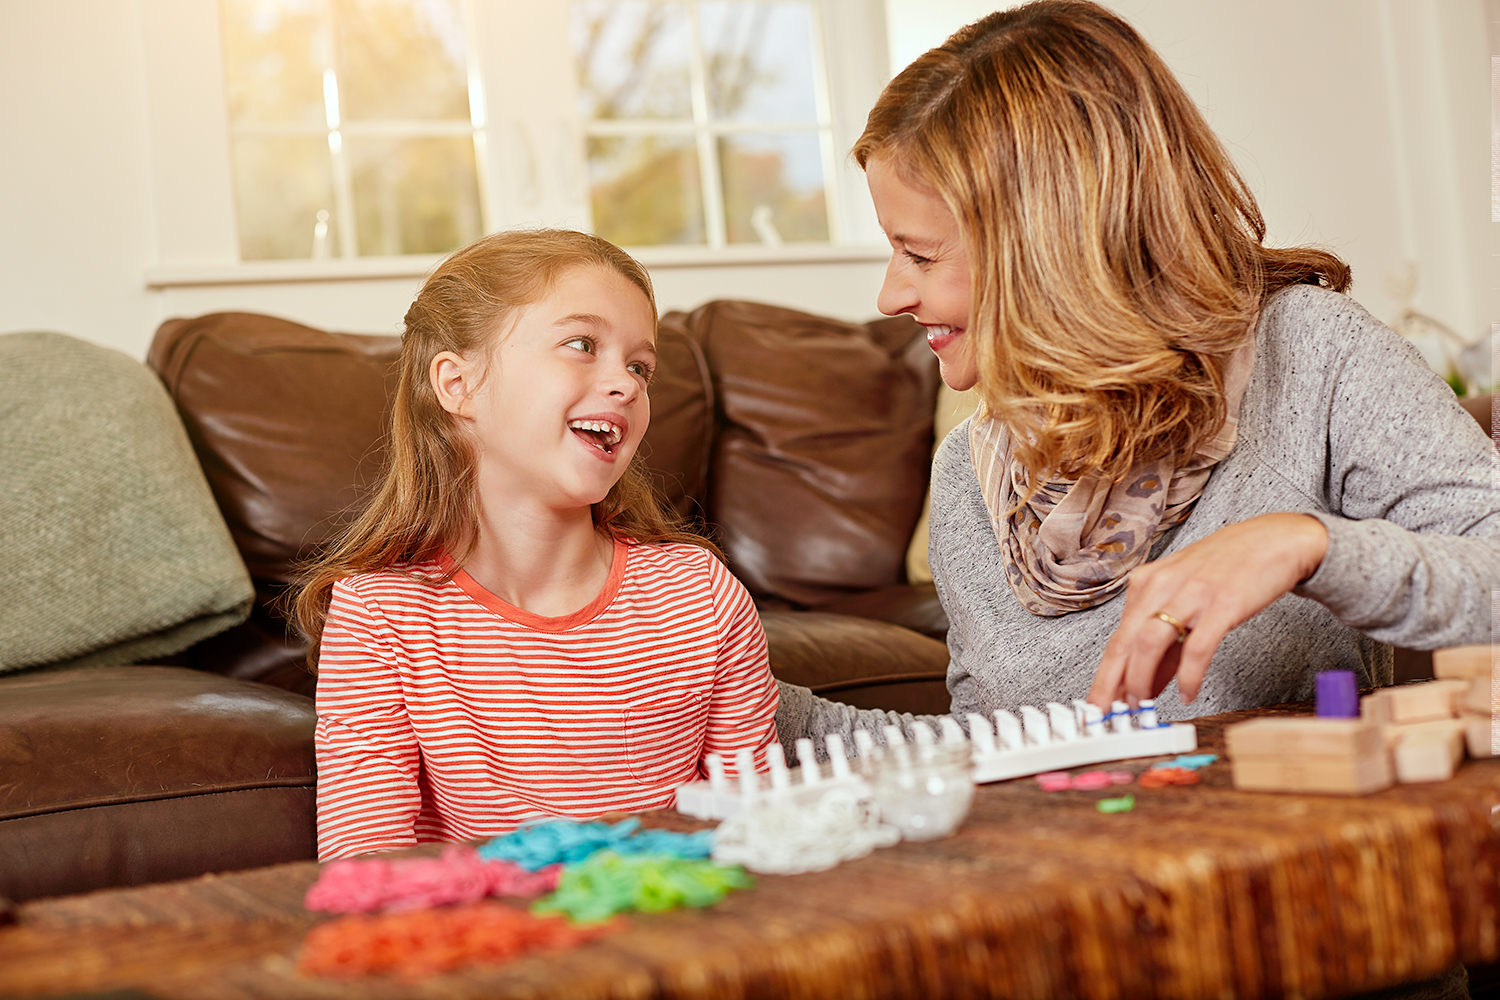 mother and daughter playing in living room.jpg